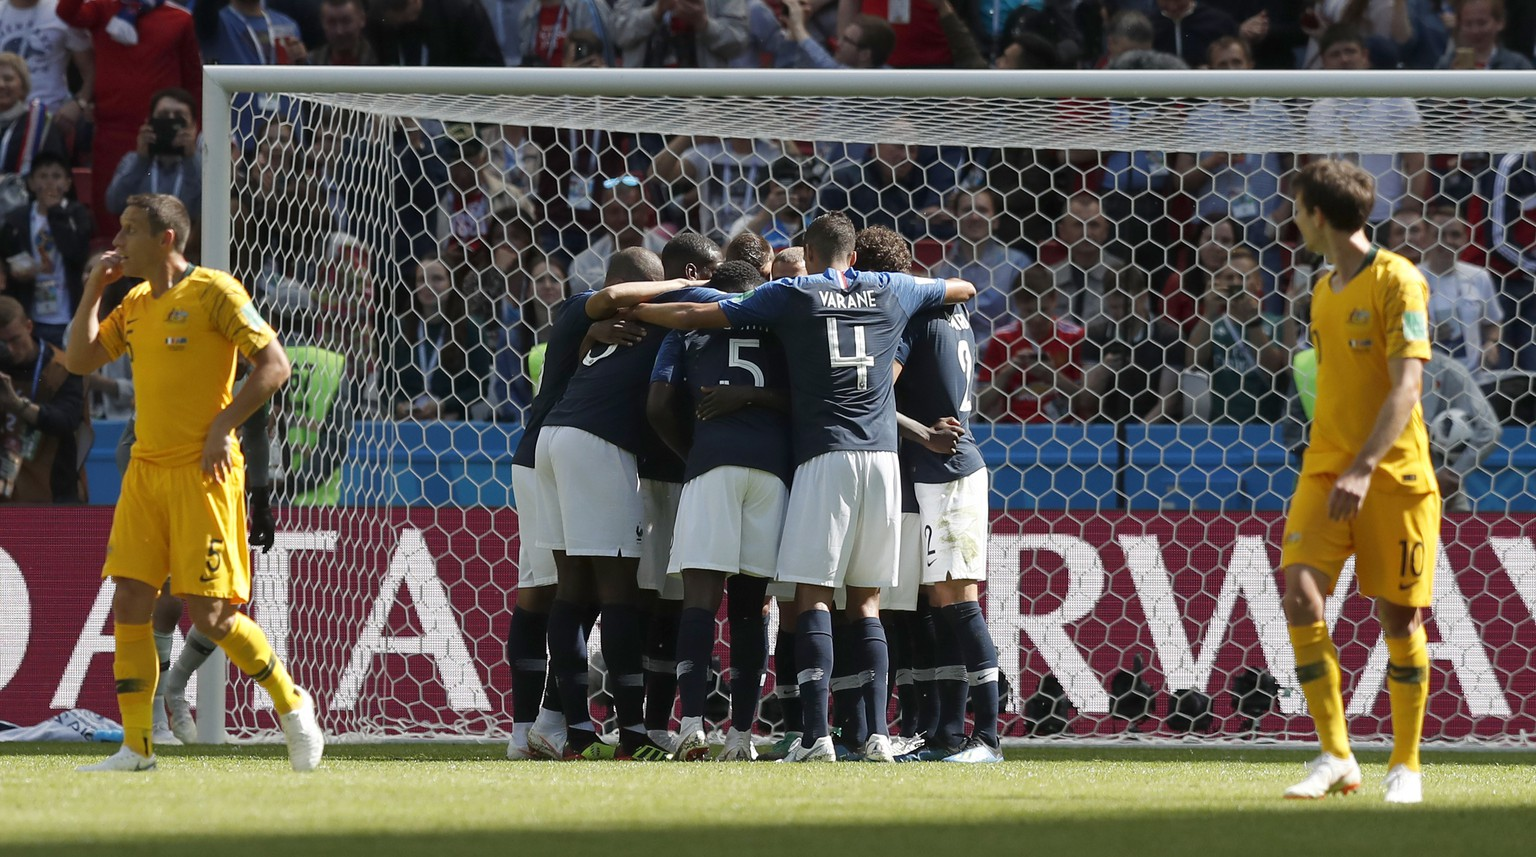 Members of the French team mob France's Antoine Griezmann after he scored the opening goal from the penalty spot during the group C match between France and Australia at the 2018 soccer World Cup in the Kazan Arena in Kazan, Russia, Saturday, June 16, 2018. (AP Photo/Pavel Golovkin)